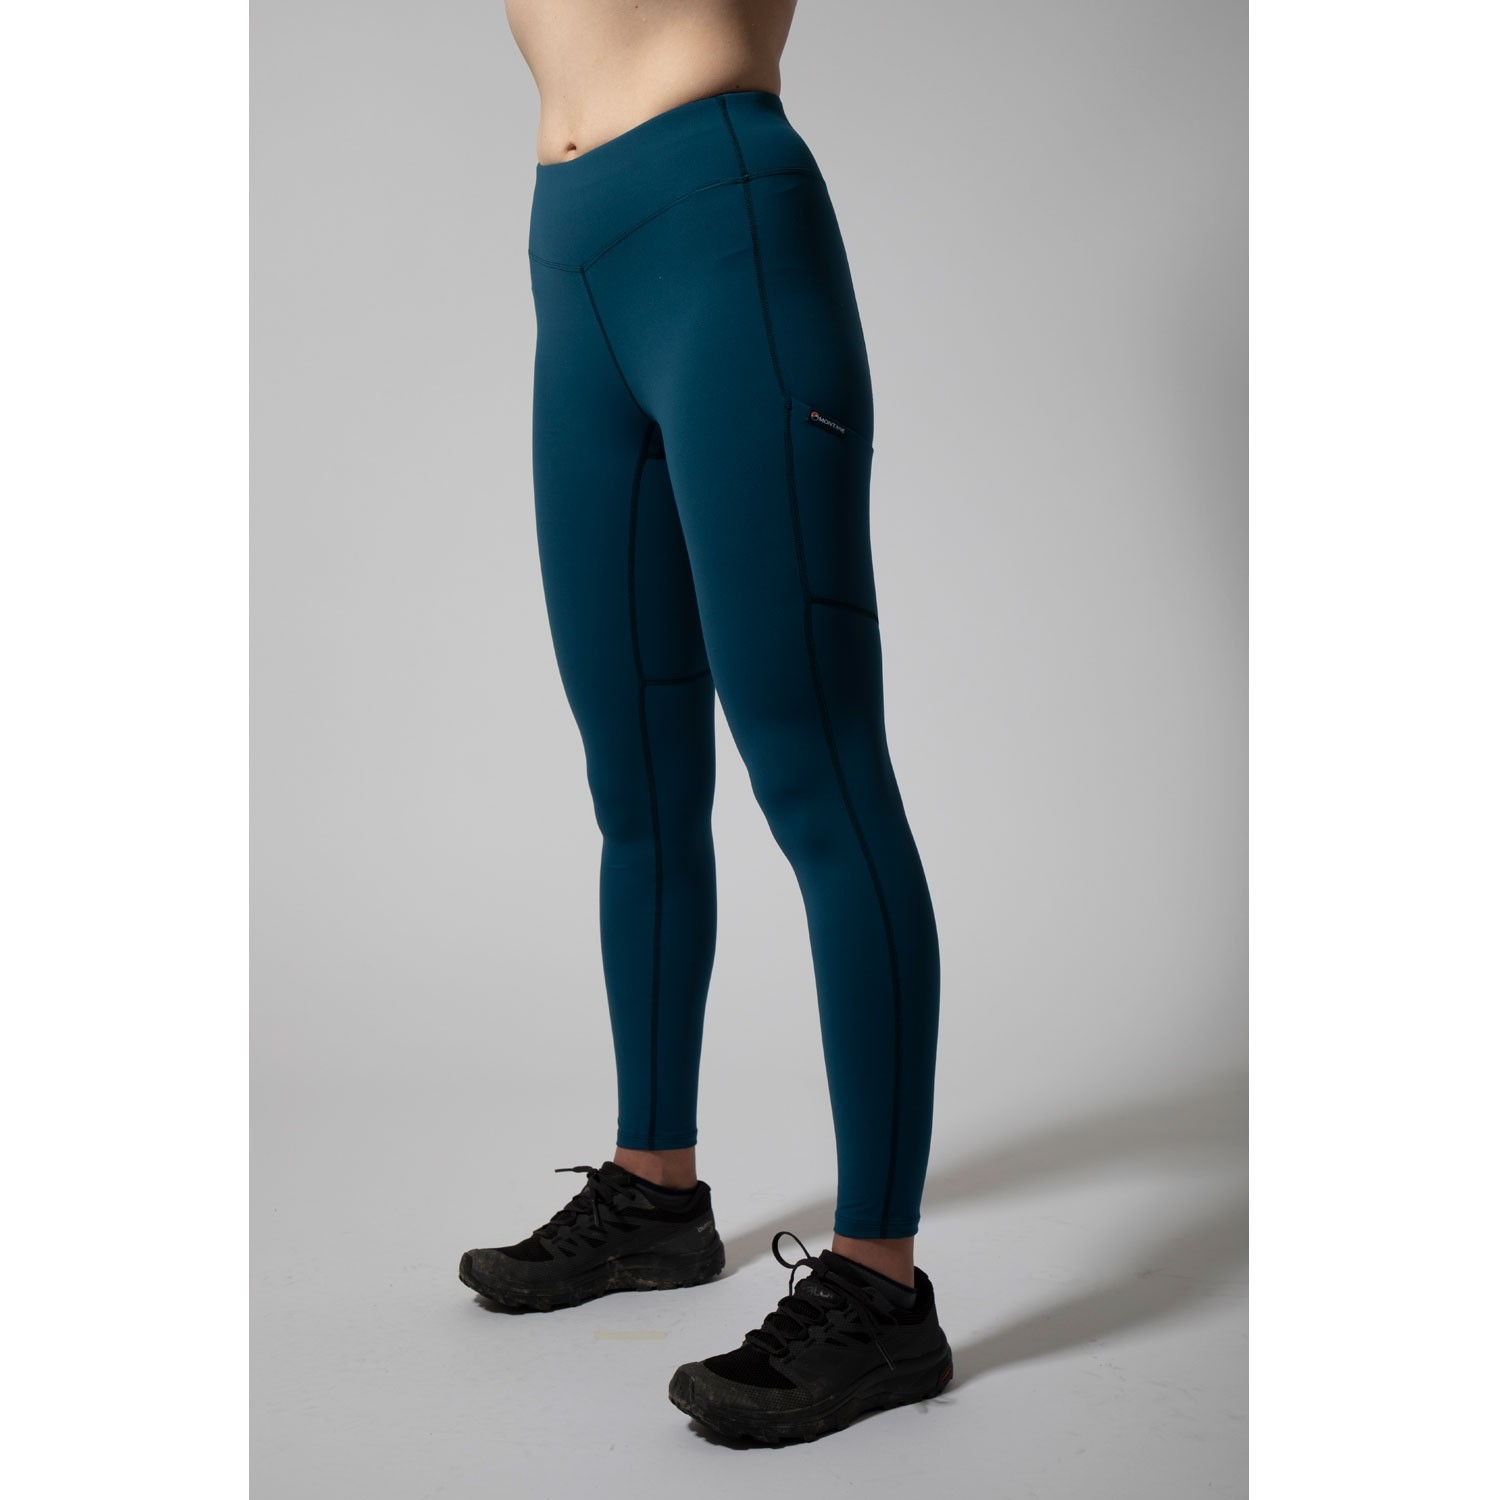 Montane Ineo Lite Pants - Narwhal Blue